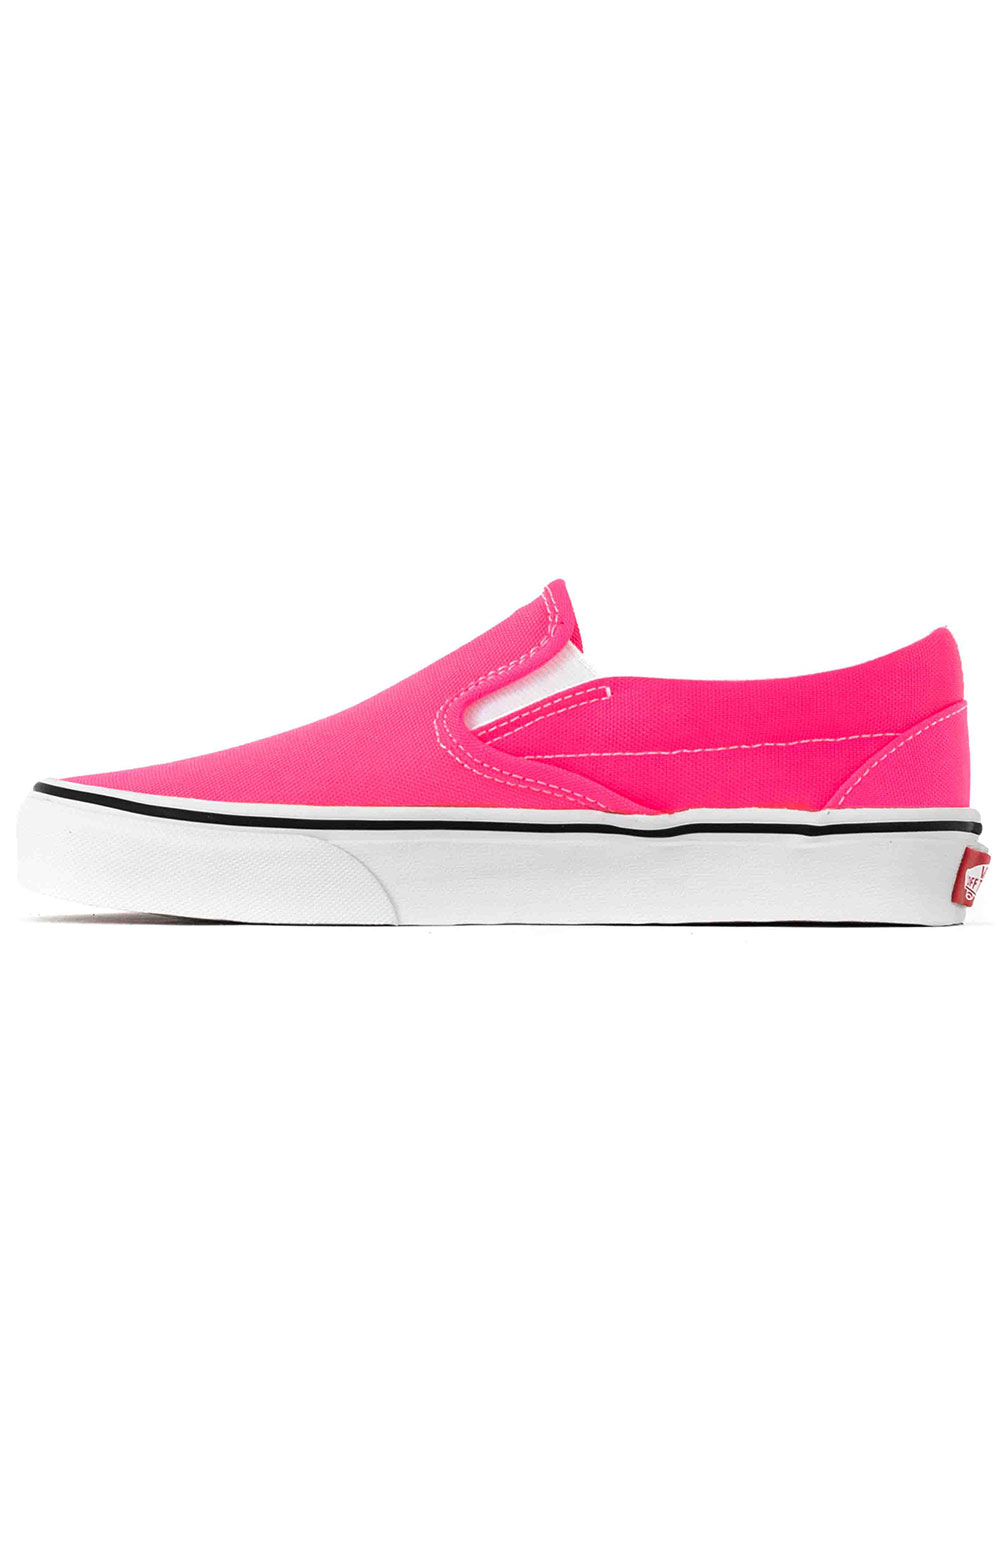 (U38WT6) Neon Classic Slip-On Shoes - Knockout Pink 4